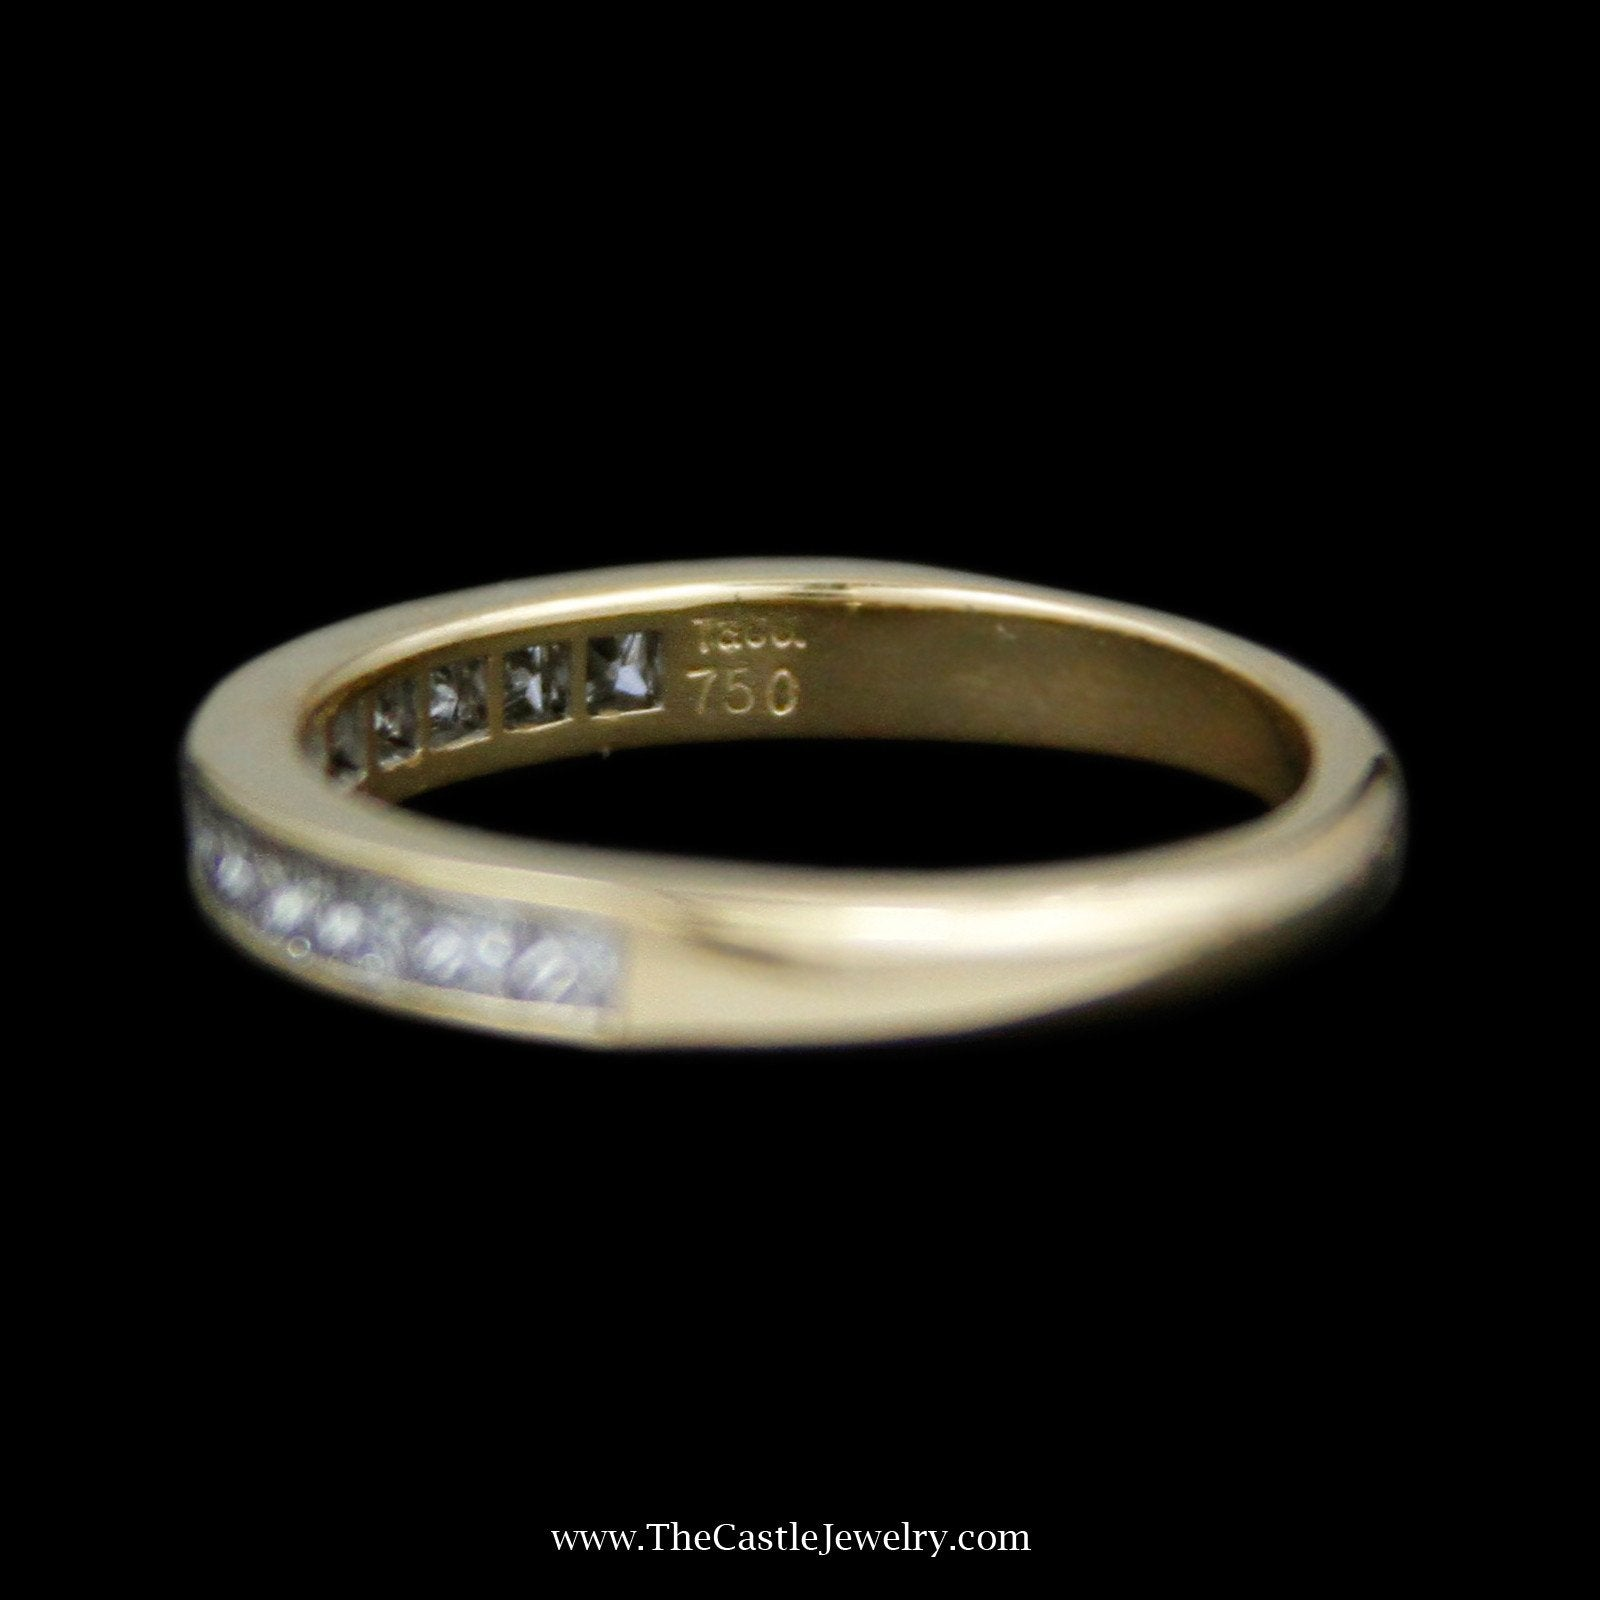 Tiffany & Co. Channel Set Princess Cut 1cttw Diamond Wedding Band Crafted in 18K Yellow Gold-3